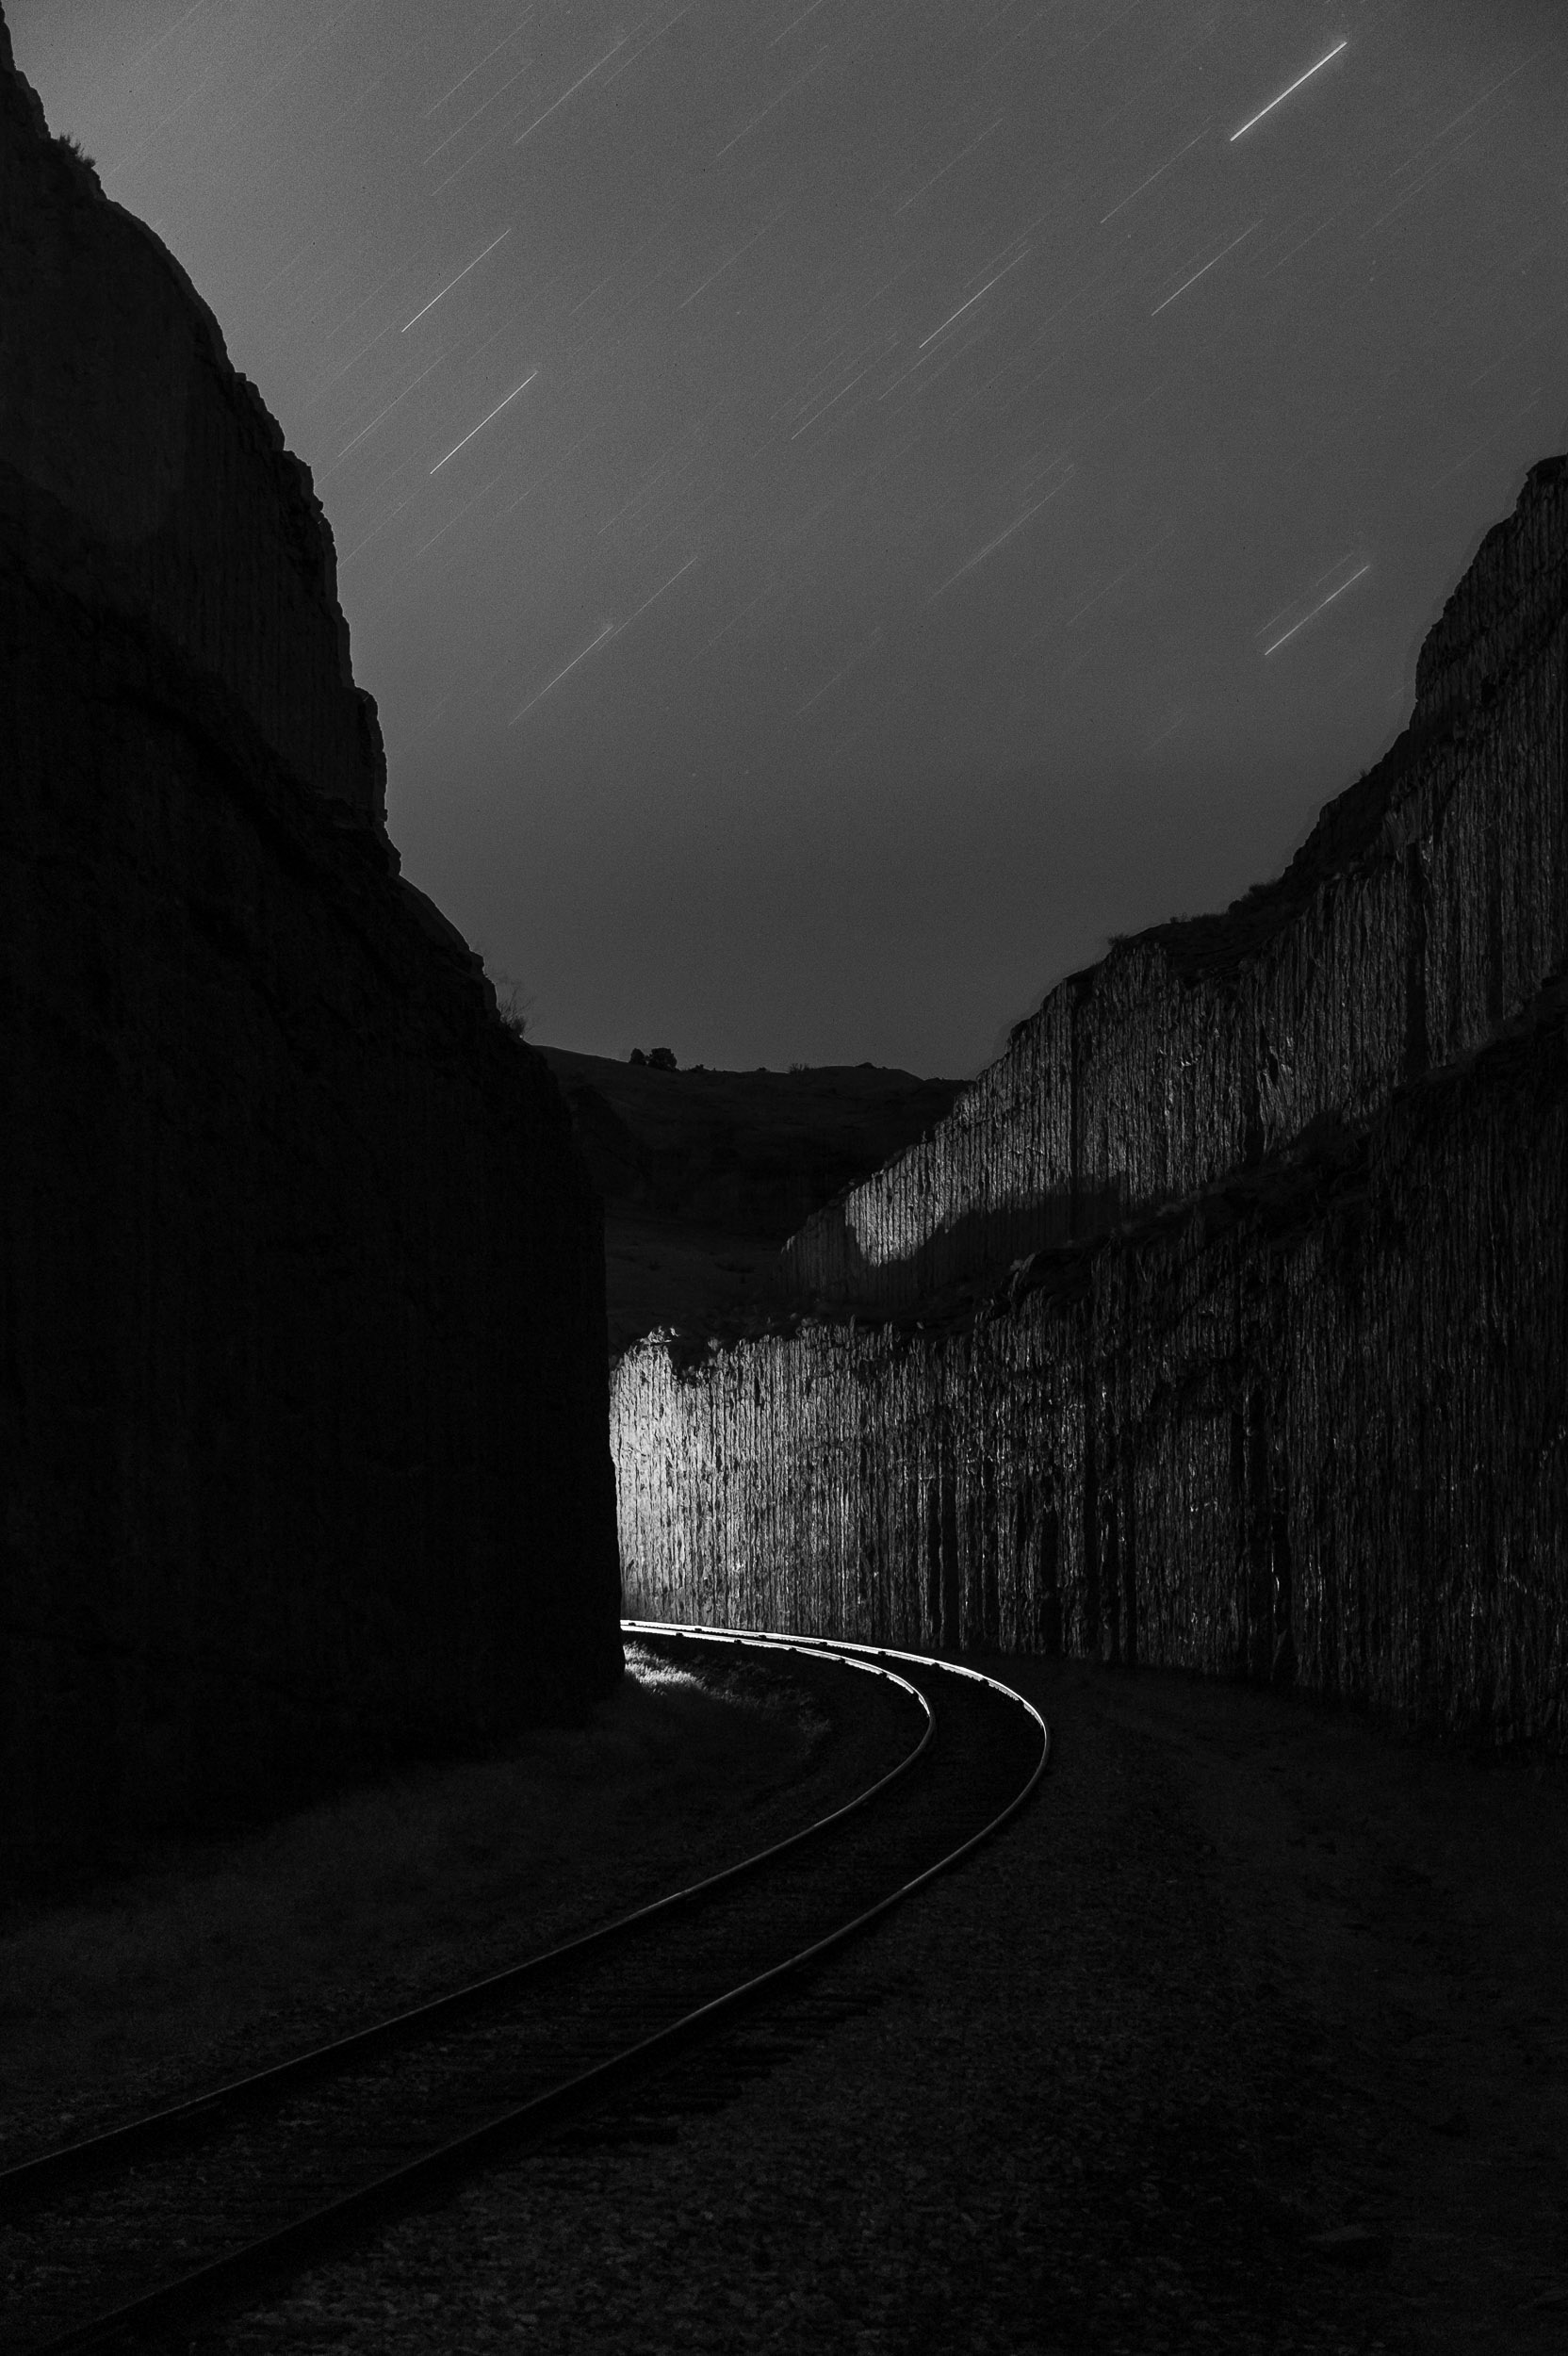 Union Pacific Railroad Potash Rail, along the Corona Arch Trail, Moab, Utah. Nikon D3s,  24-70mm f/2.8 . 498 seconds, f/4, ISO 800.